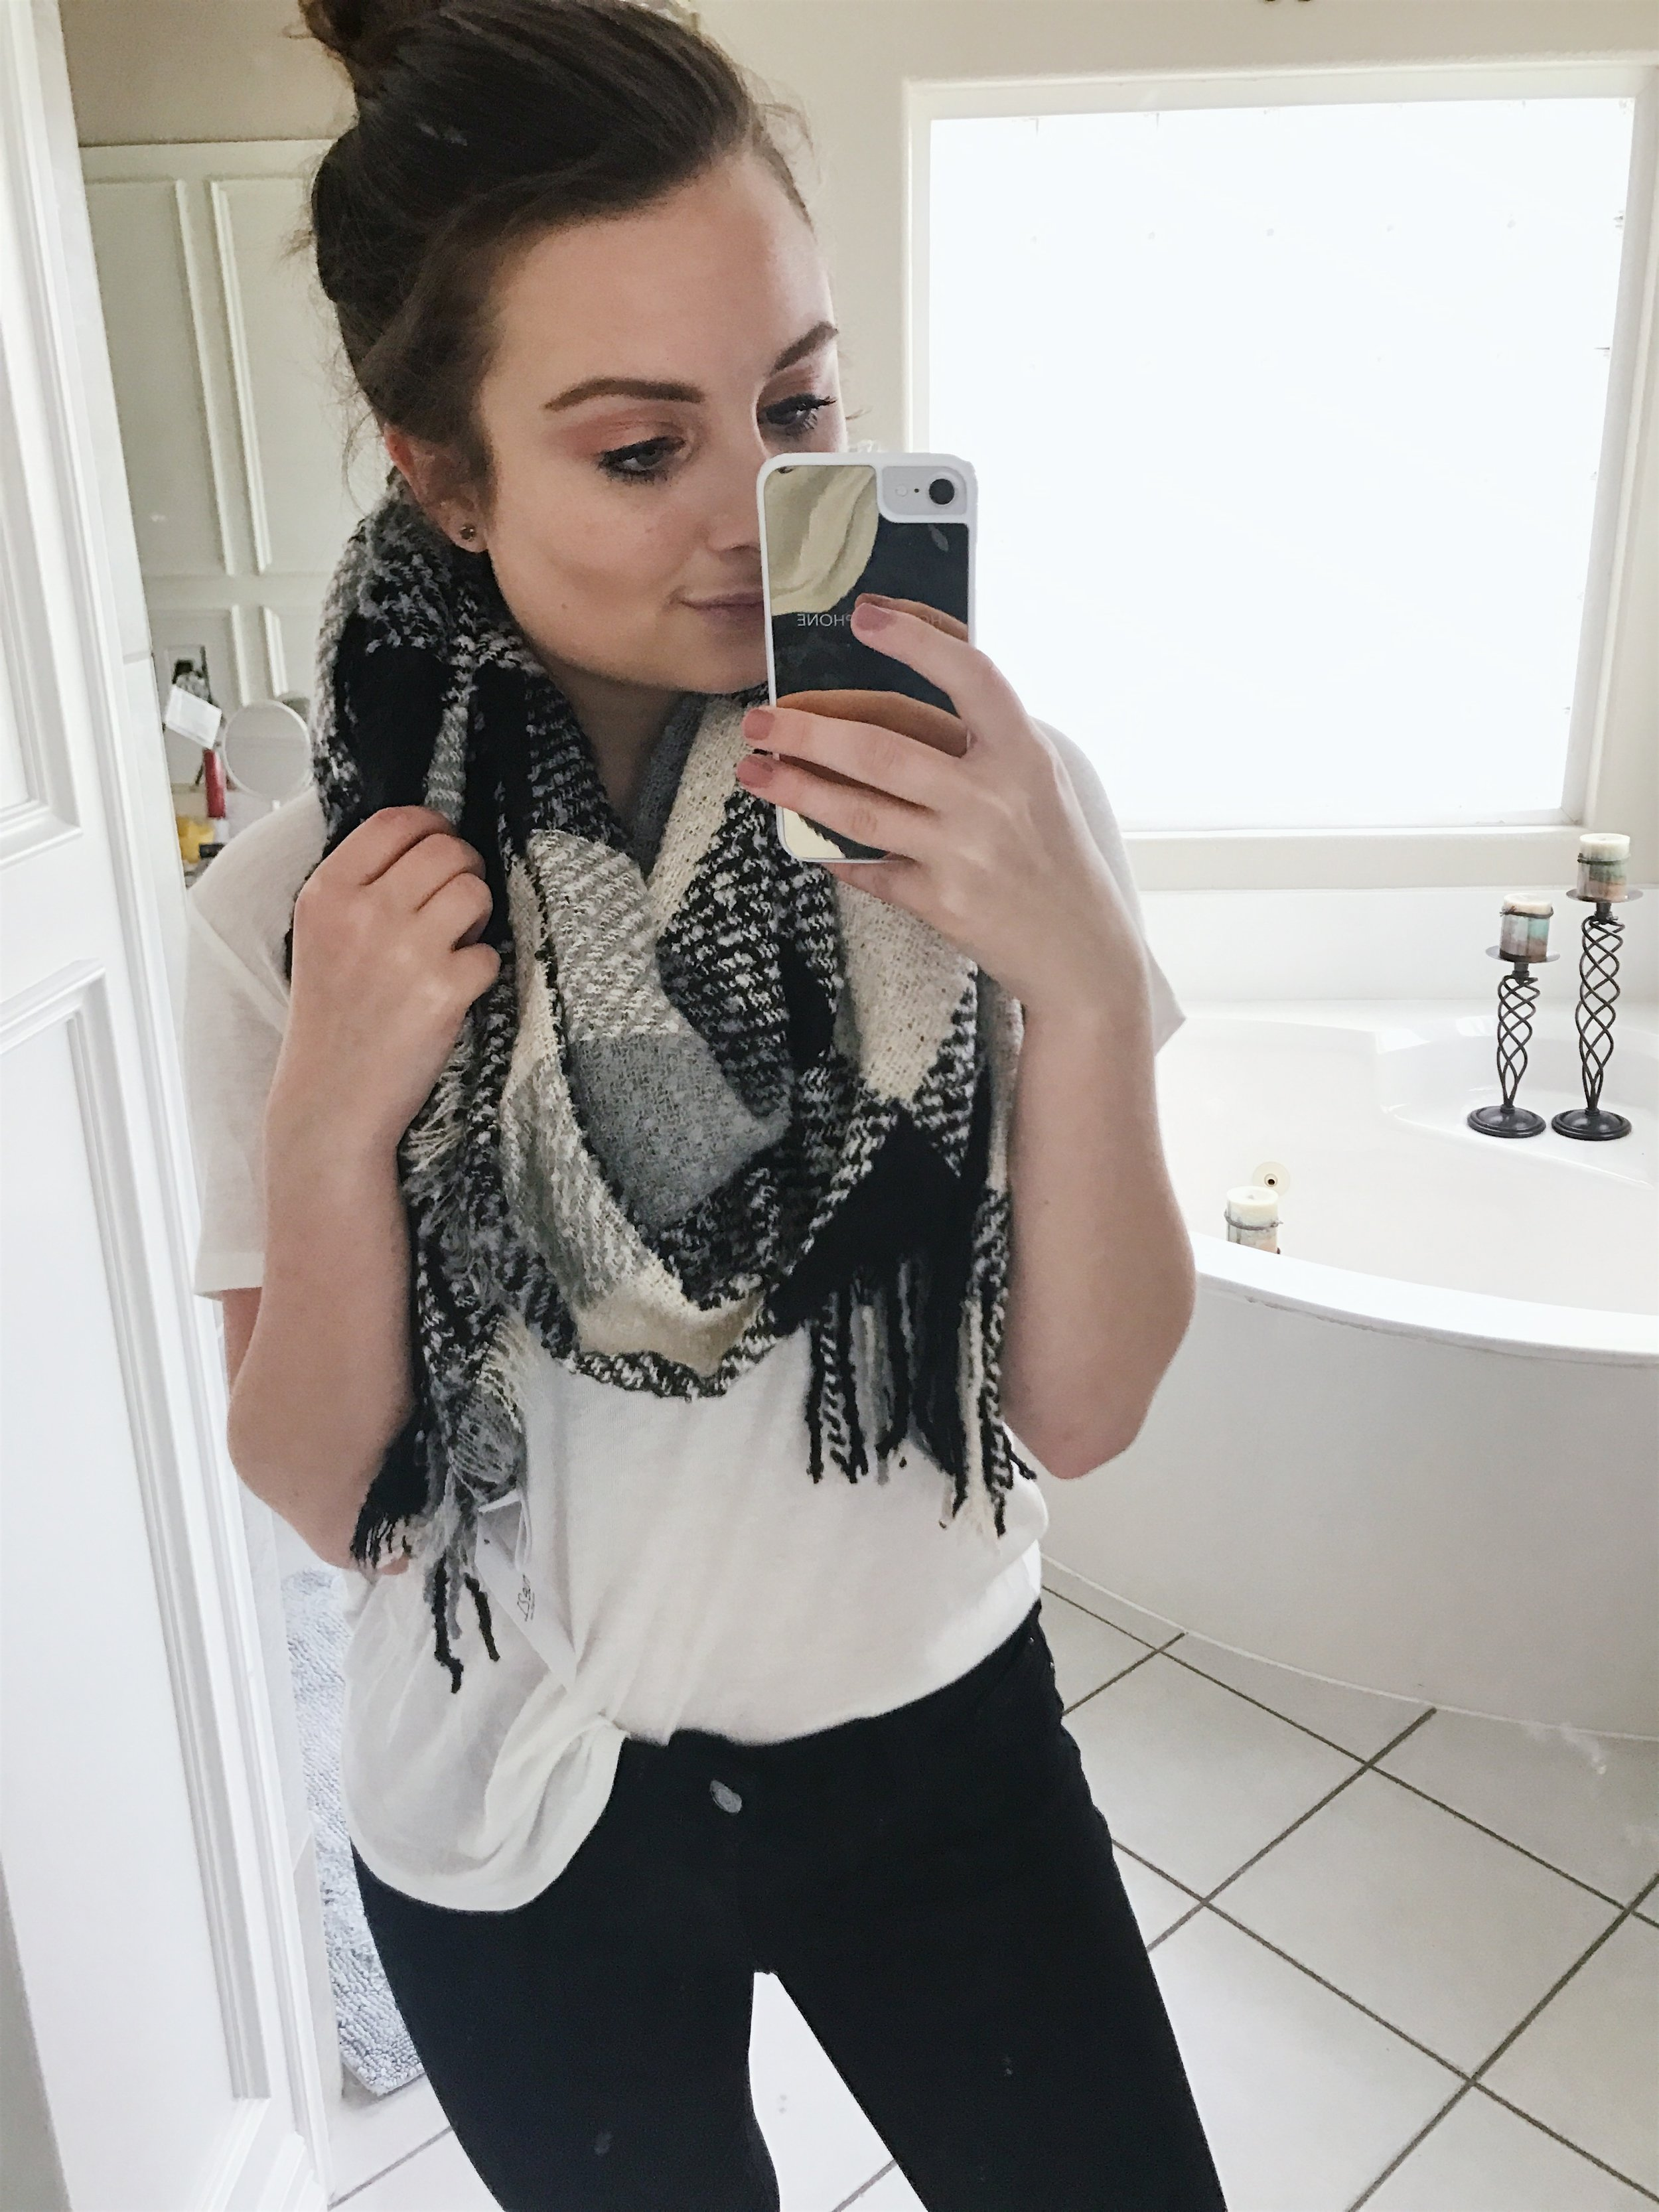 scarf here,  I paid $2.50